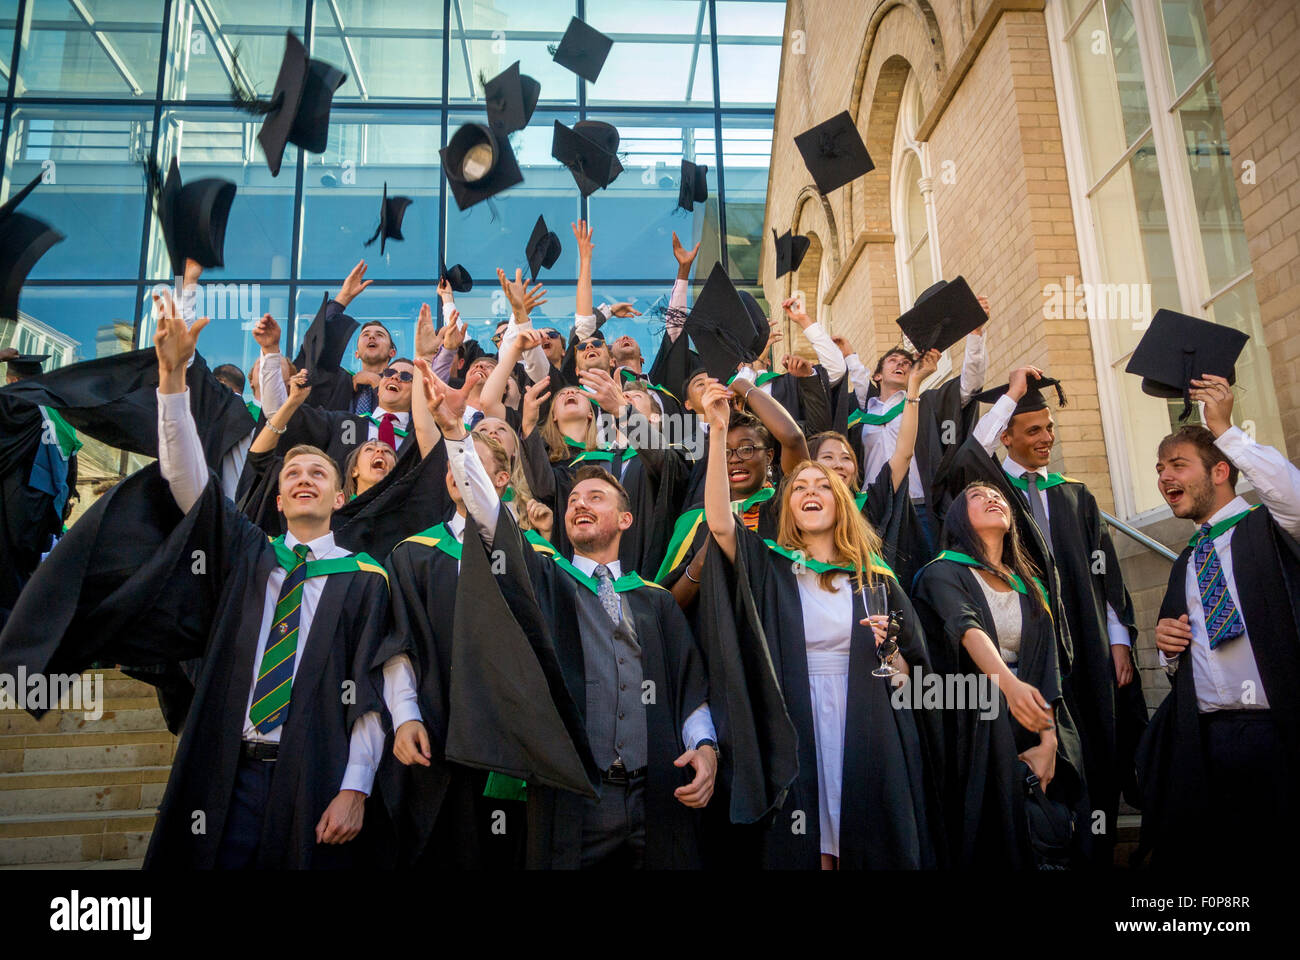 New Graduates celebrating by throwing mortar boards in air on graduation day - Stock Image